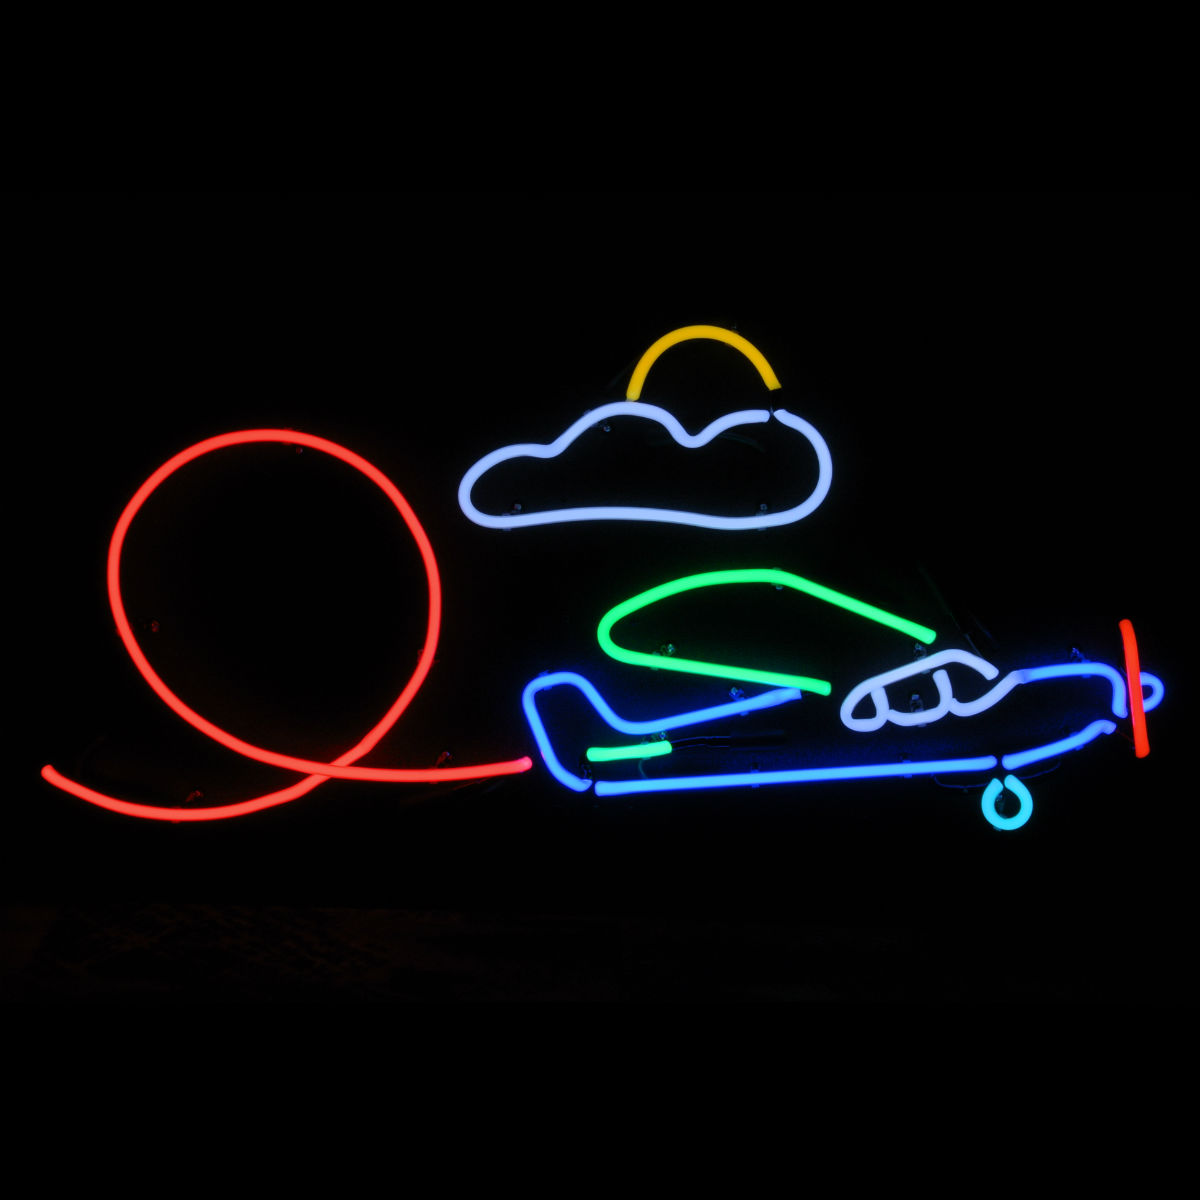 SKYDIVER CUSTOM DESIGNER NEON LIGHT ARTWORKS by John Barton - BartonNeonMagic.com